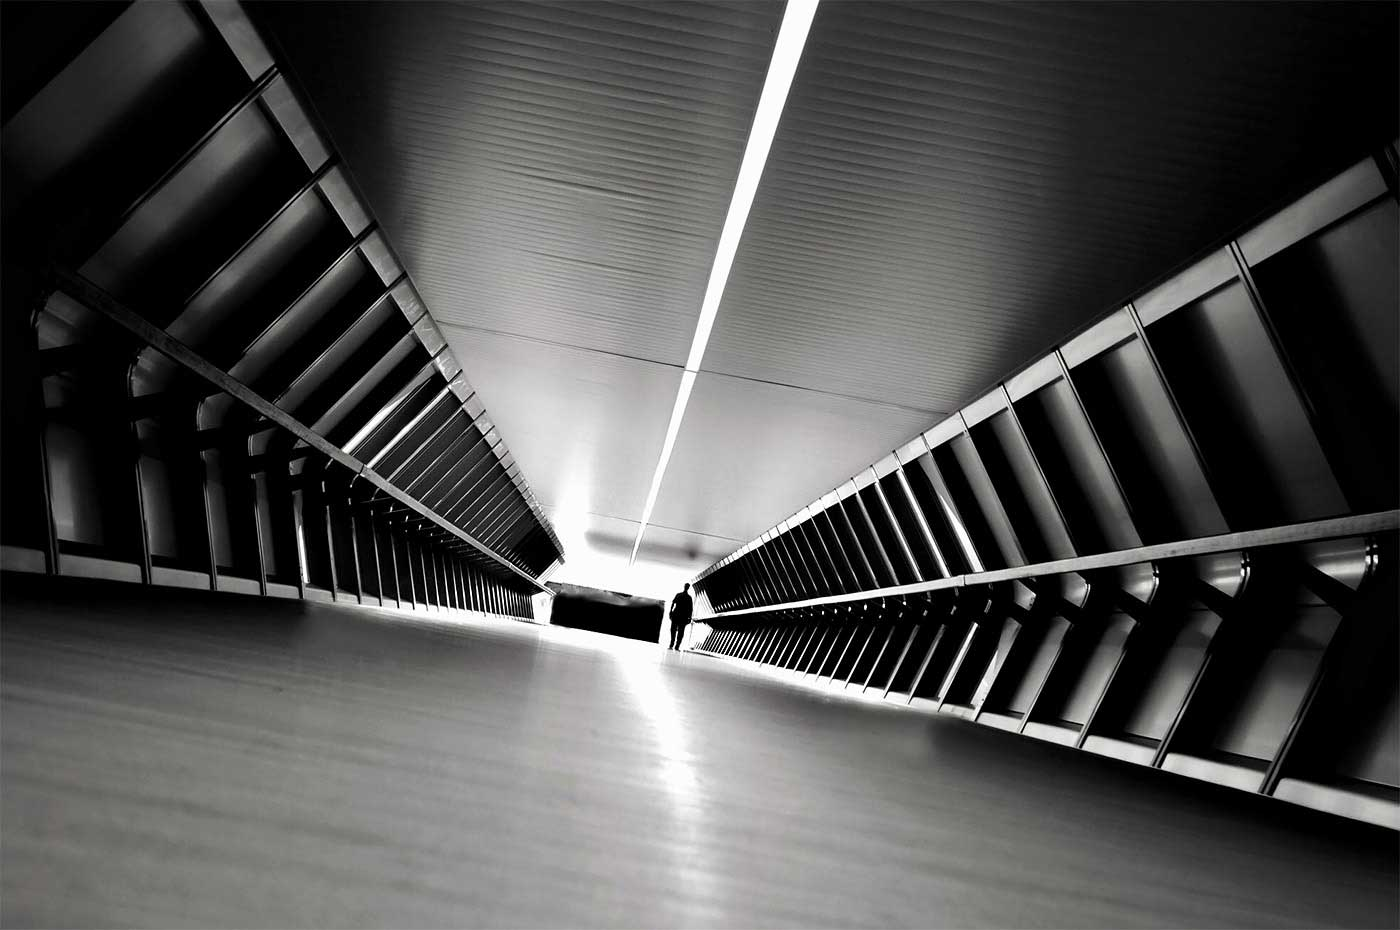 Fotografie: Mark Fearnley Mark-Fearnley_Beneath-The-Streets_01